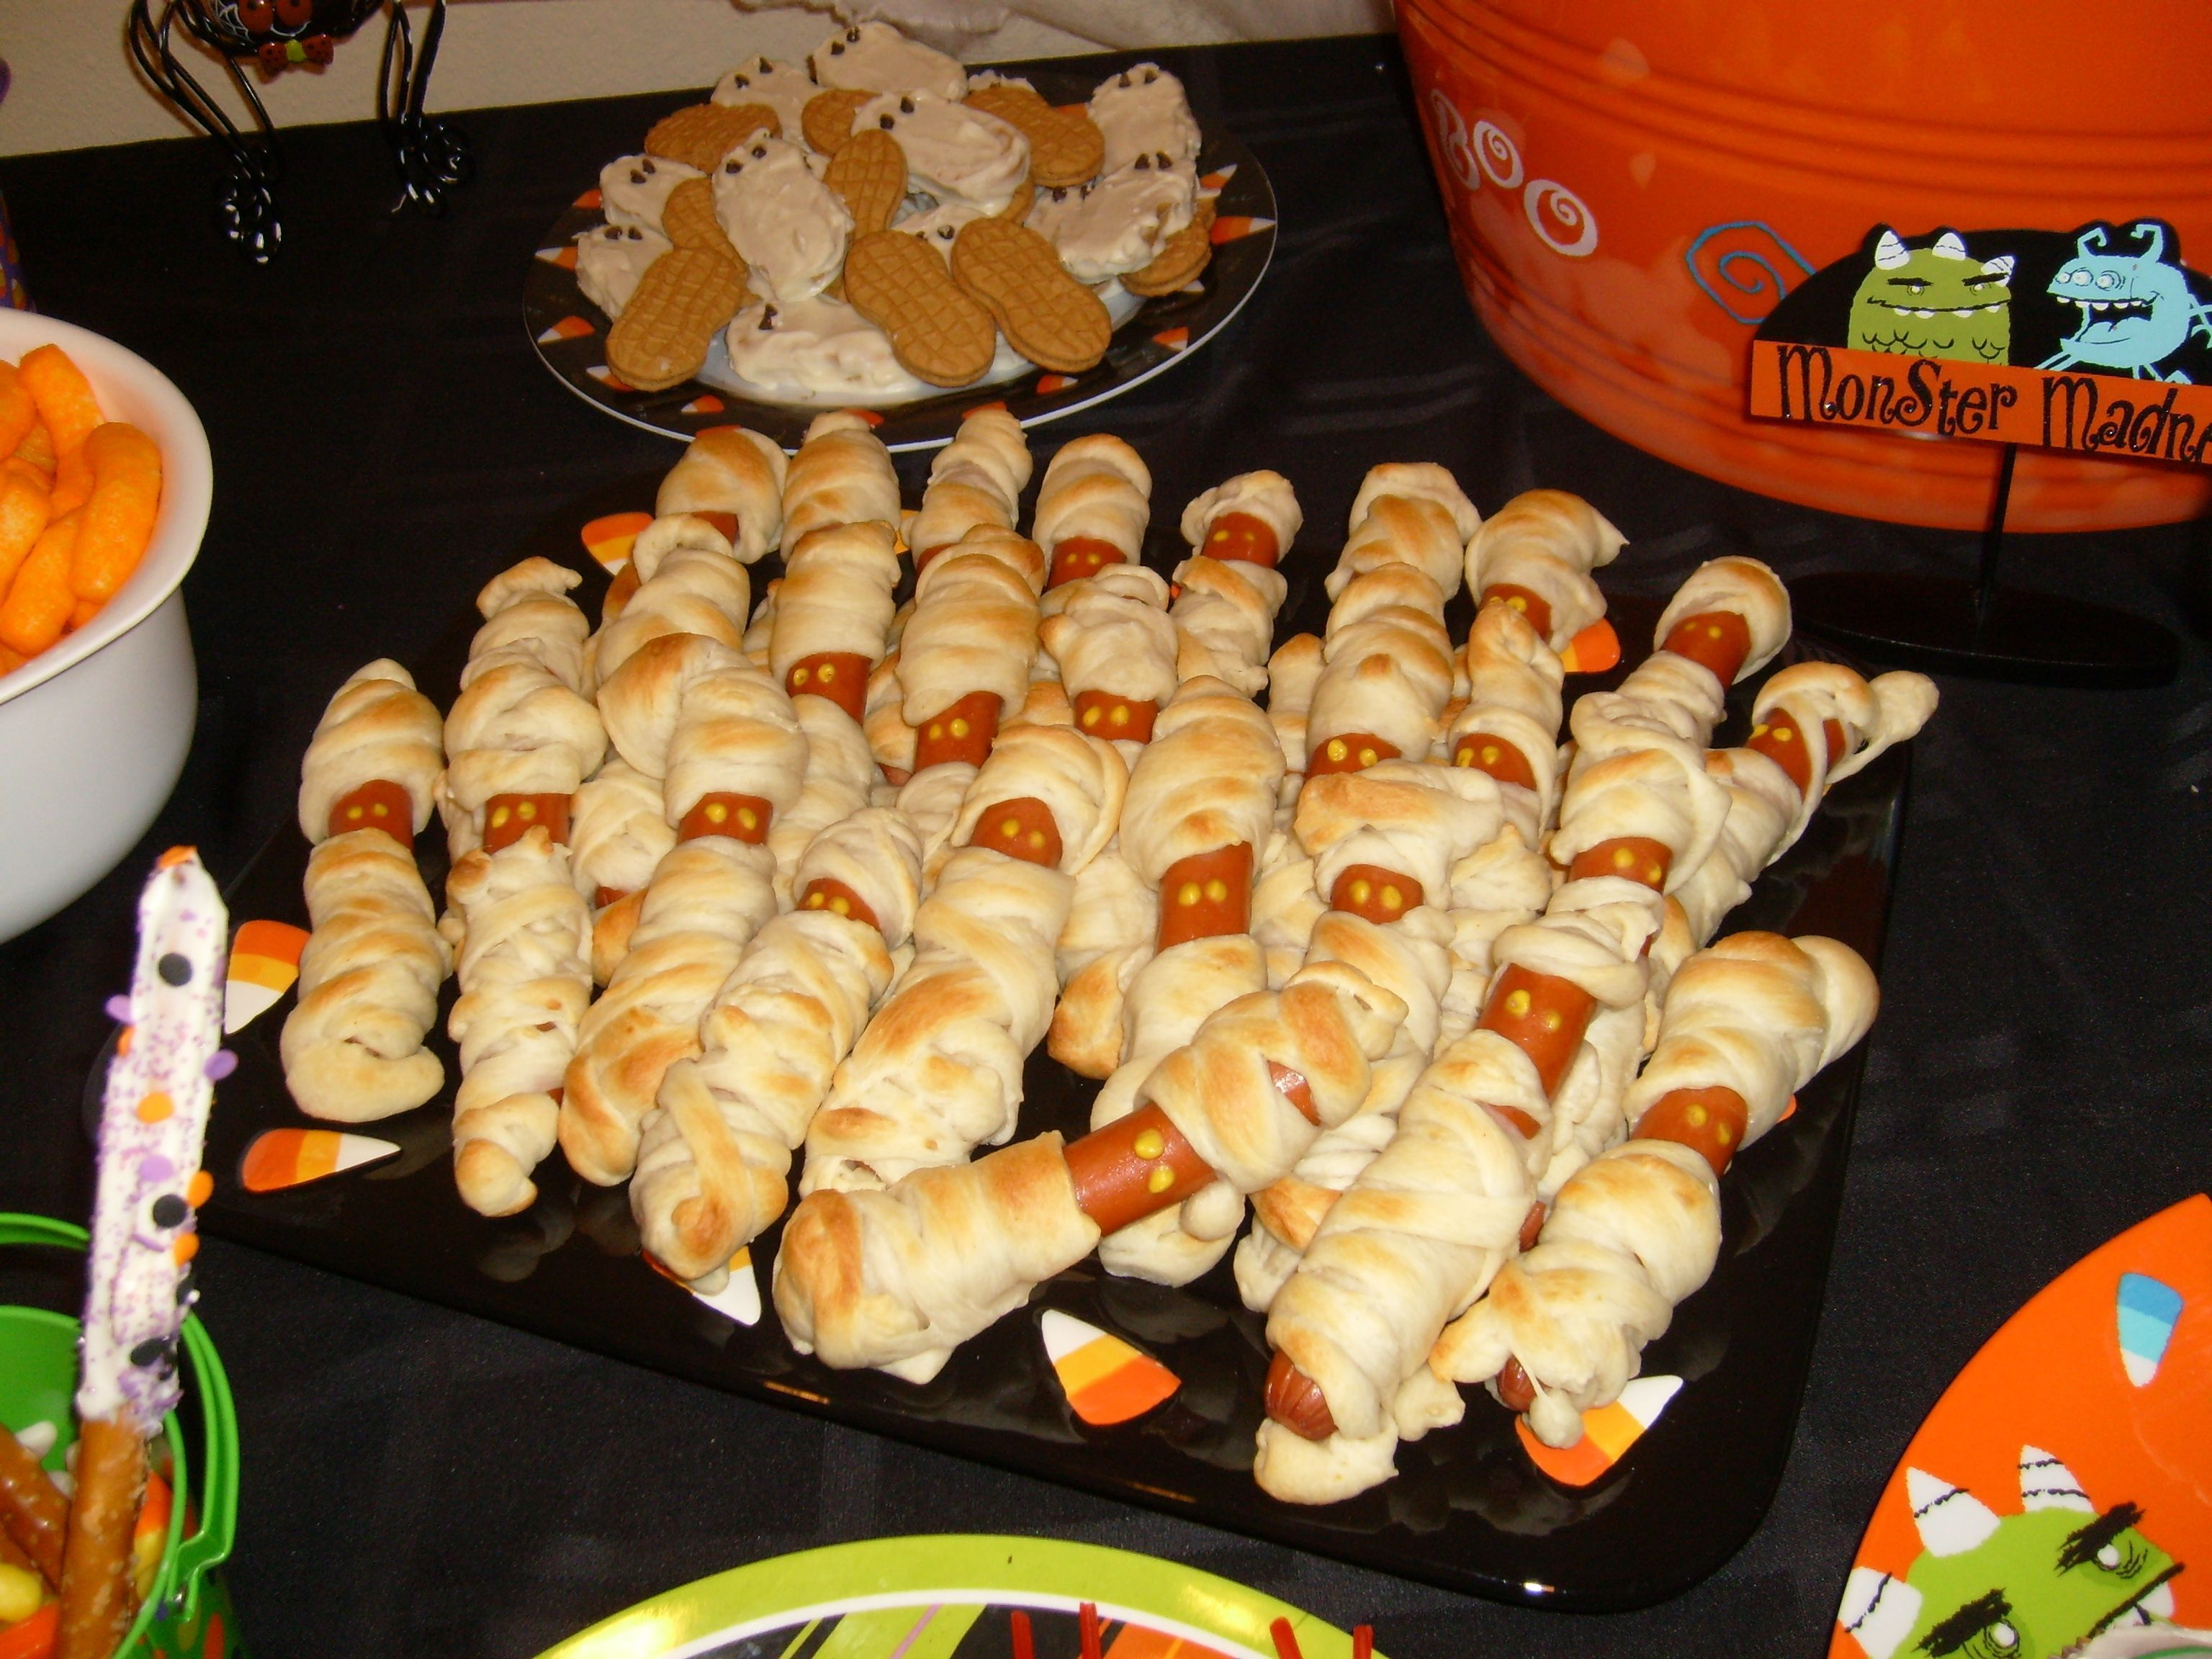 Mummy hotdogs!  Crescent rolls and hotdogs with mustard faces :) Amy and my halloween party yums! #mummyhotdogscrescentrolls Mummy hotdogs!  Crescent rolls and hotdogs with mustard faces :) Amy and my halloween party yums! #mummyhotdogscrescentrolls Mummy hotdogs!  Crescent rolls and hotdogs with mustard faces :) Amy and my halloween party yums! #mummyhotdogscrescentrolls Mummy hotdogs!  Crescent rolls and hotdogs with mustard faces :) Amy and my halloween party yums! #mummyhotdogscrescentrolls